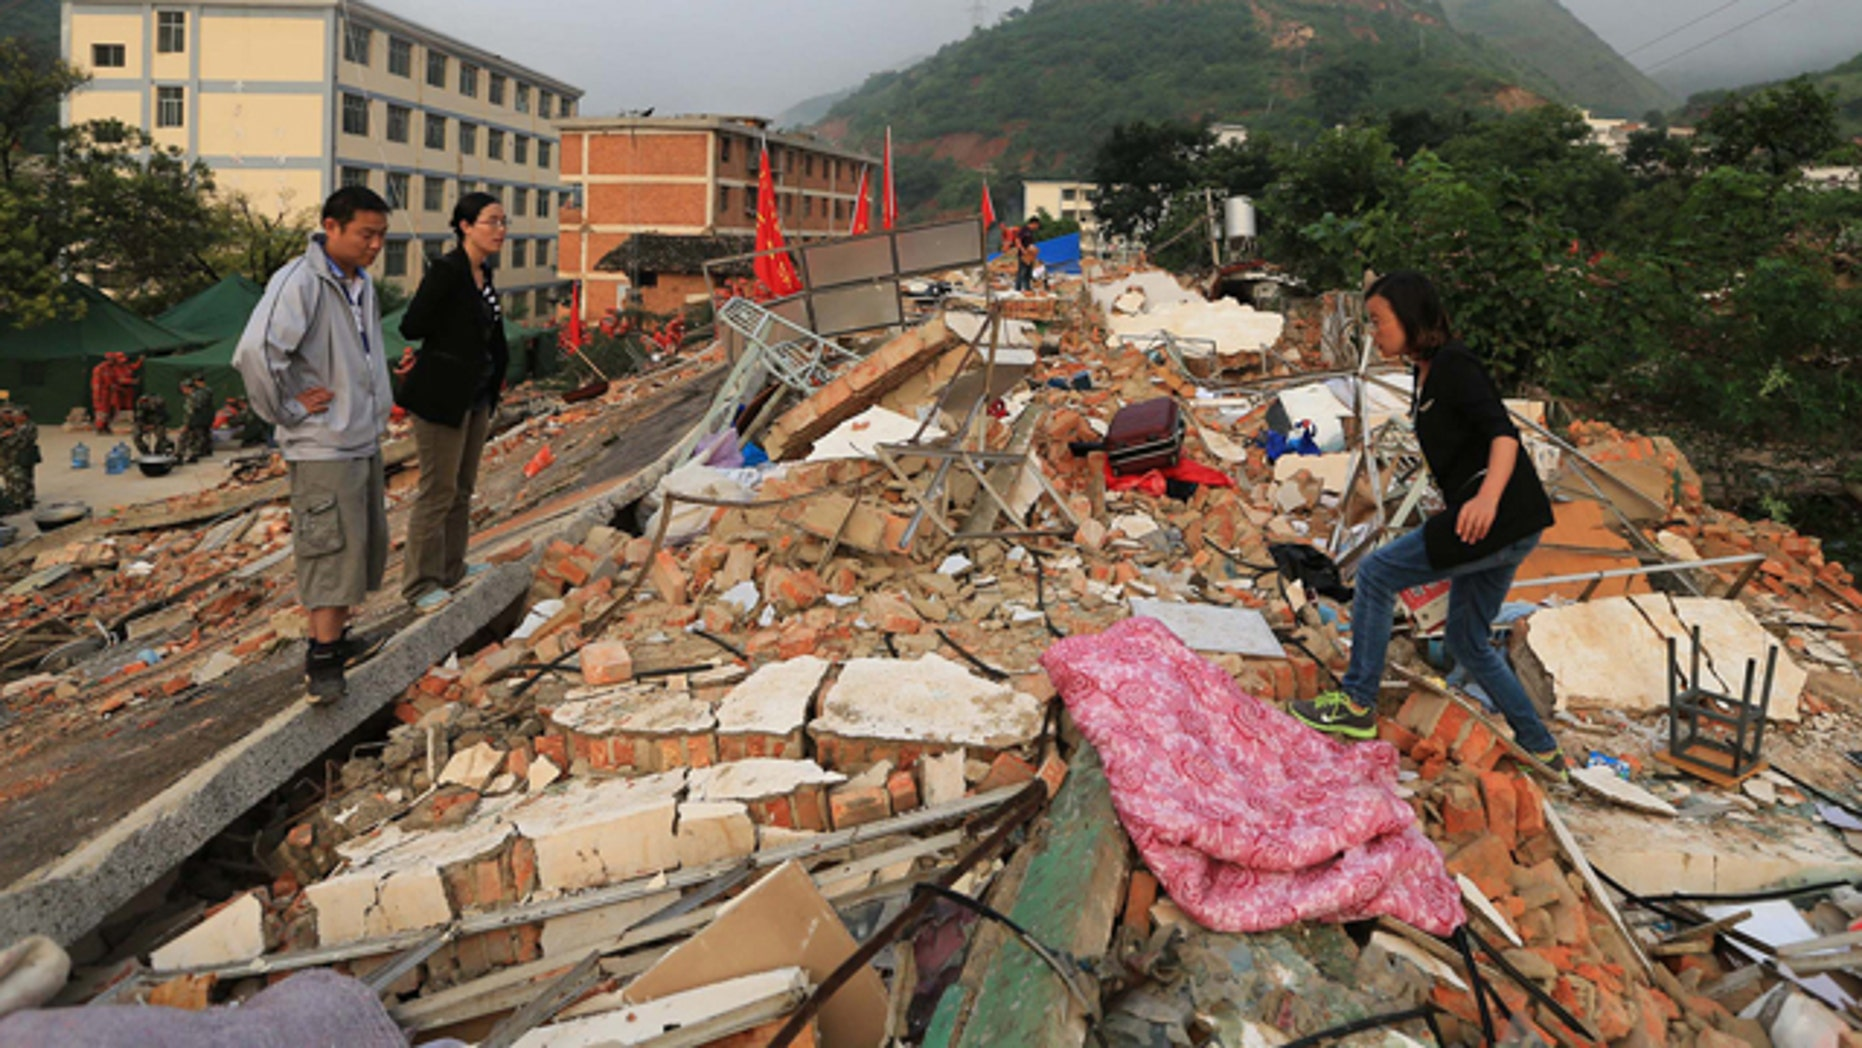 August 5, 2014: In this photo provided by China's Xinhua News Agency, teachers search for their belongings from collapsed dormitories at Longquan Middle School in Longtoushan town of Ludian county, southwest China's Yunnan Province. (AP Photo/Xinhua, Xing Guangli)